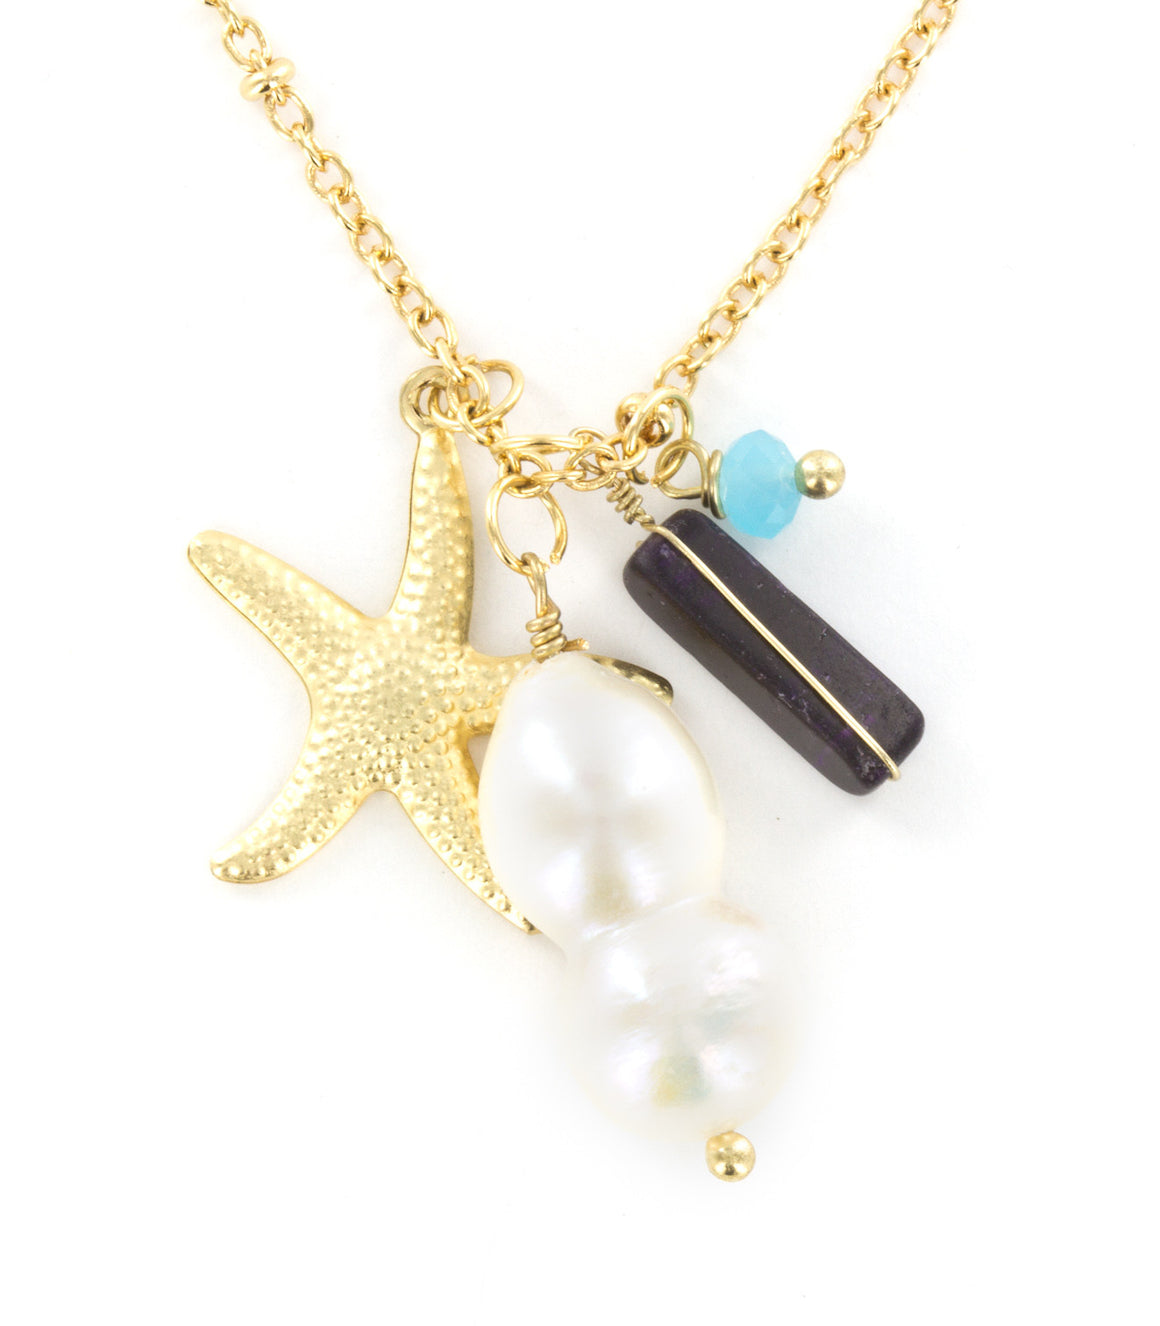 Starfish charm natural stone bead pendant necklace.